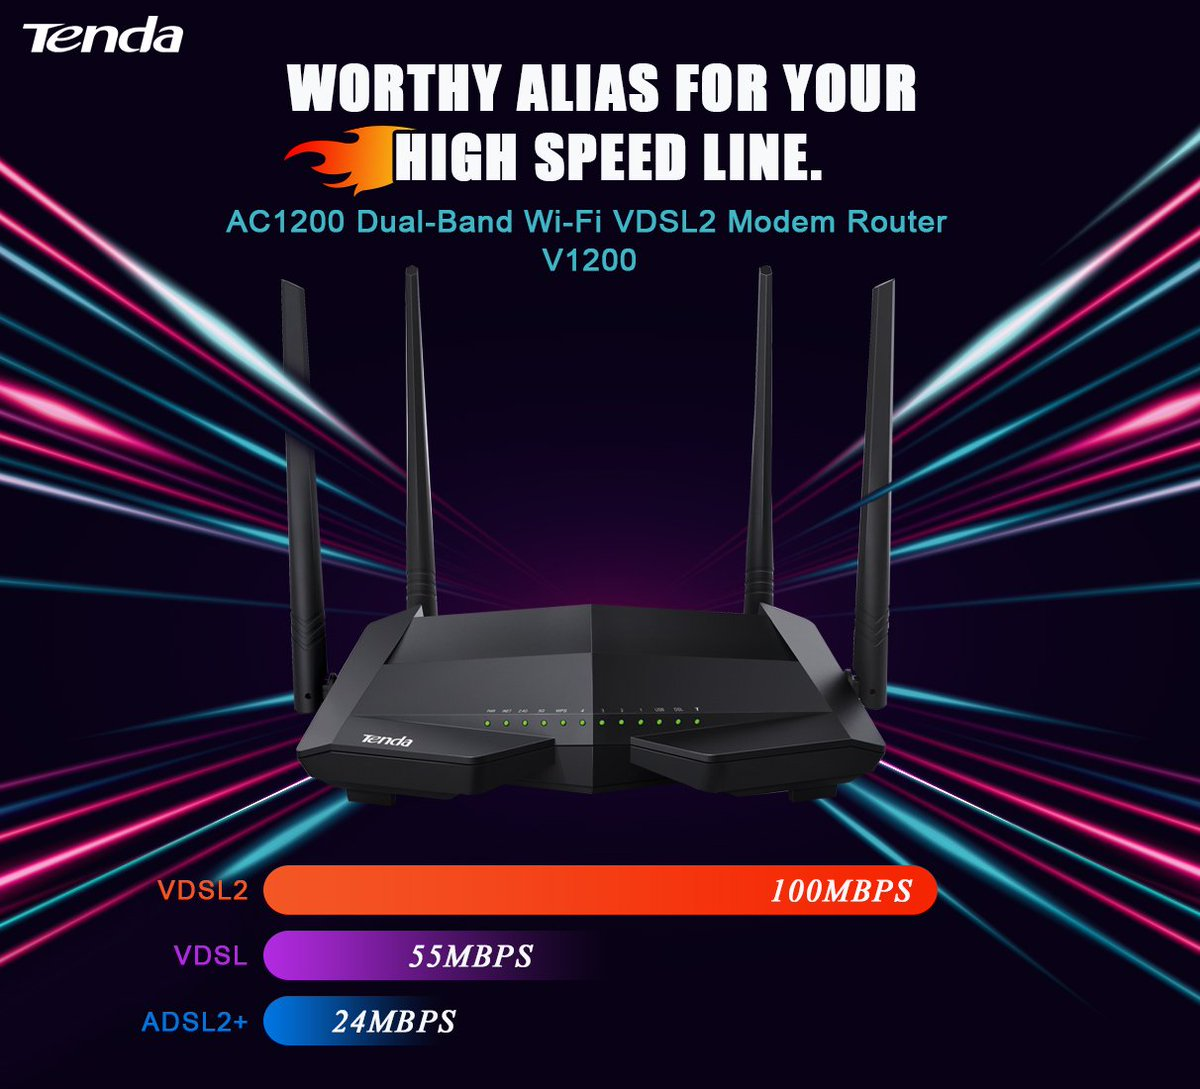 Increased speed, powerful device for your VDSL2 Internet lines  know